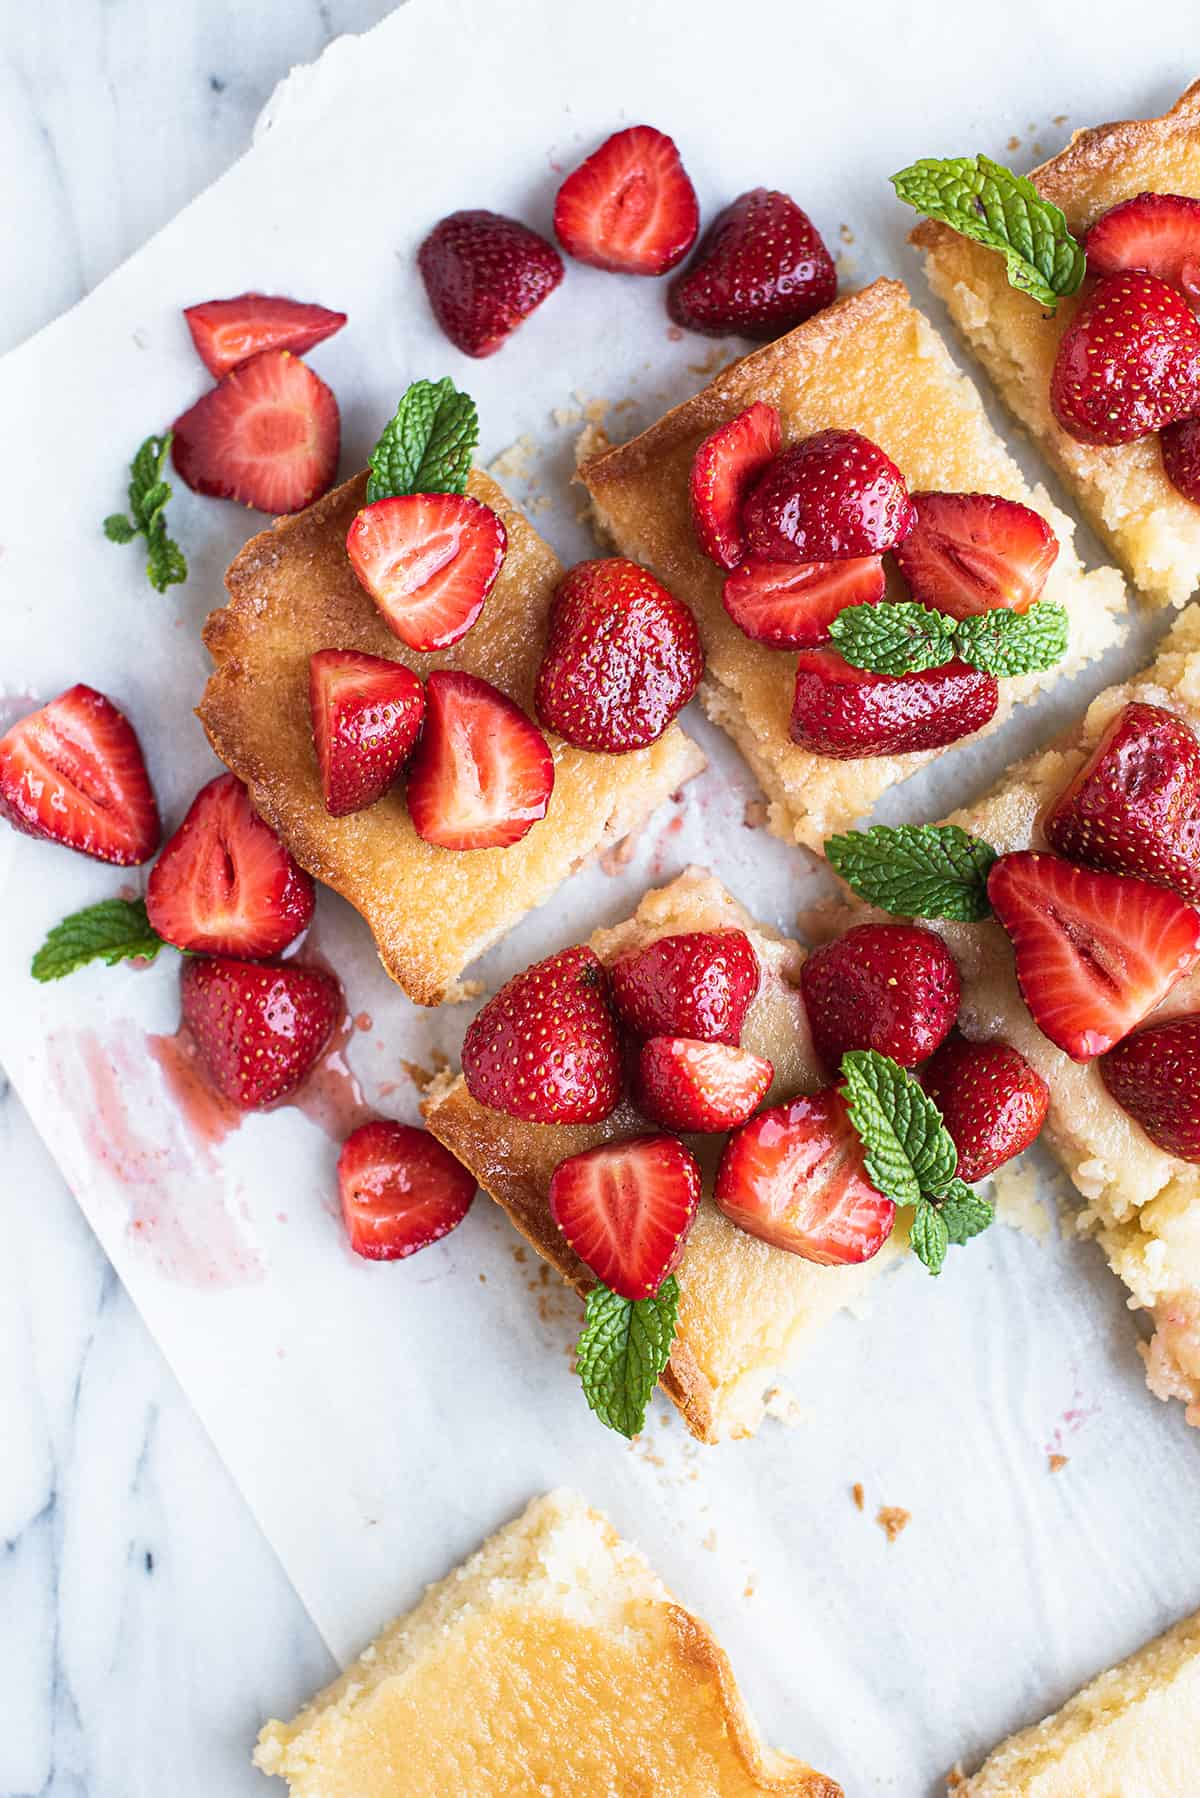 butter bars with sliced strawberries on top, on white paper with mint